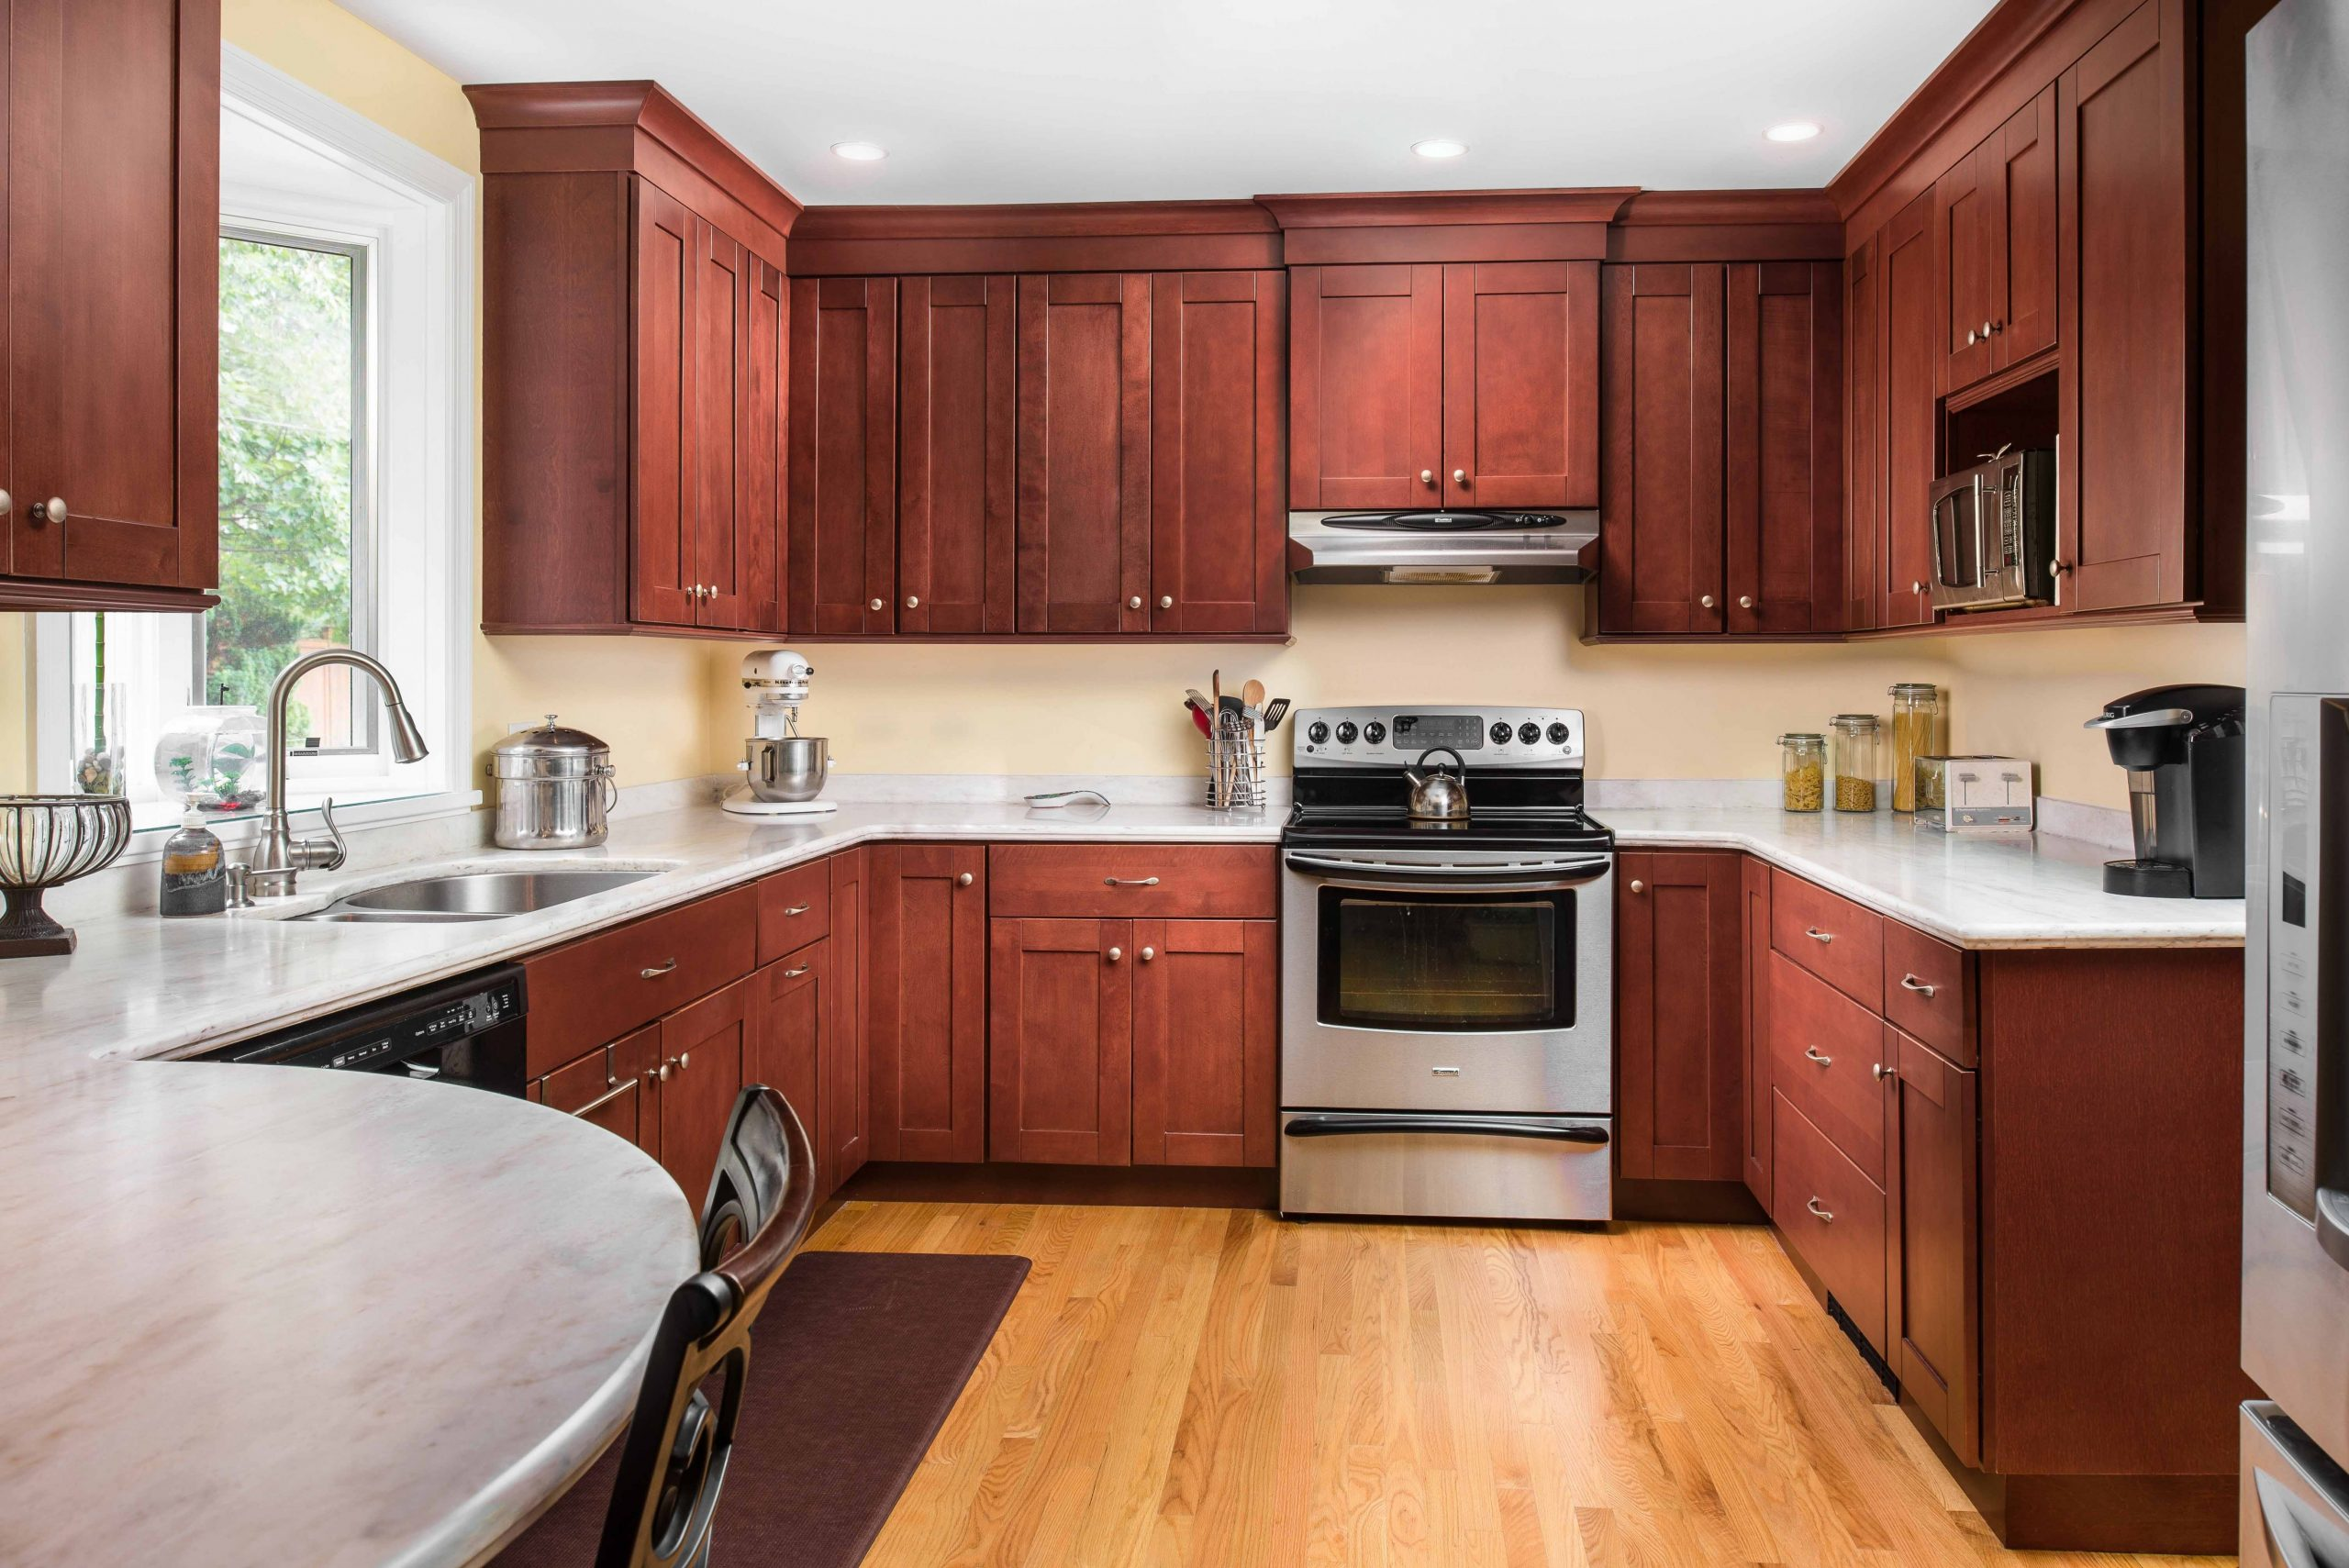 Why shaker style kitchen cabinets never go out of style - Red Shaker Kitchen Cabinets